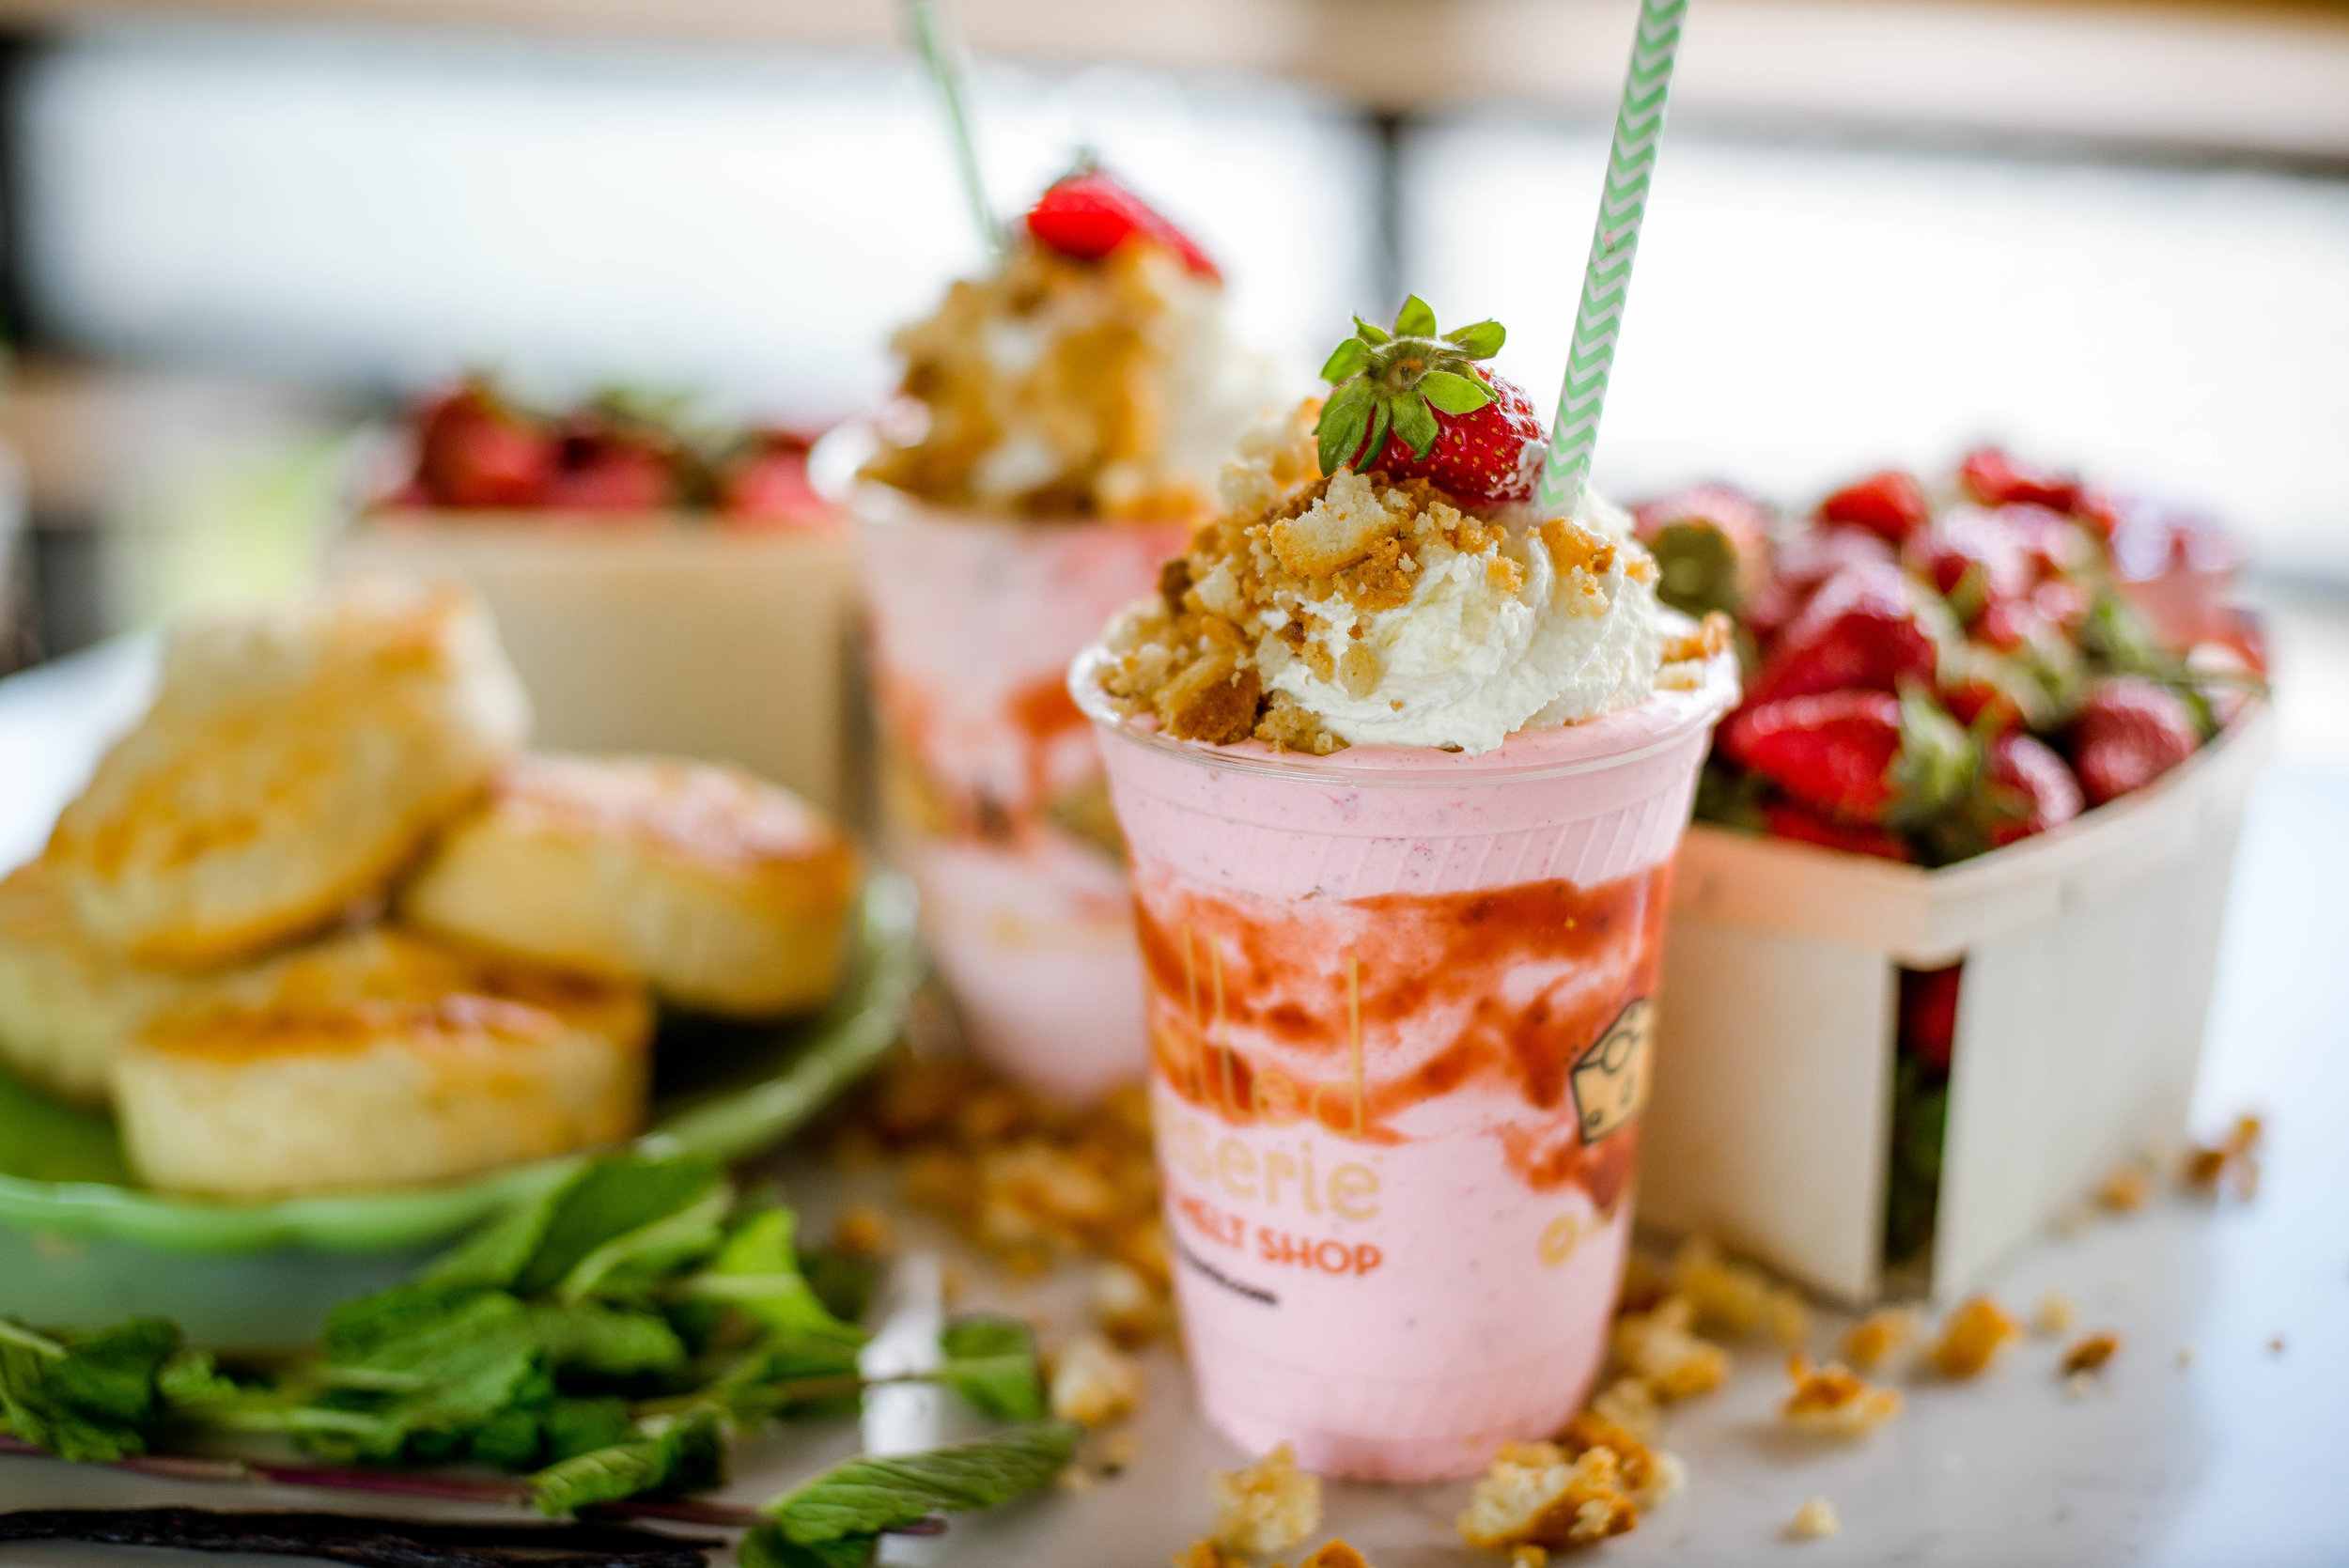 The Strawberry Short-Shake